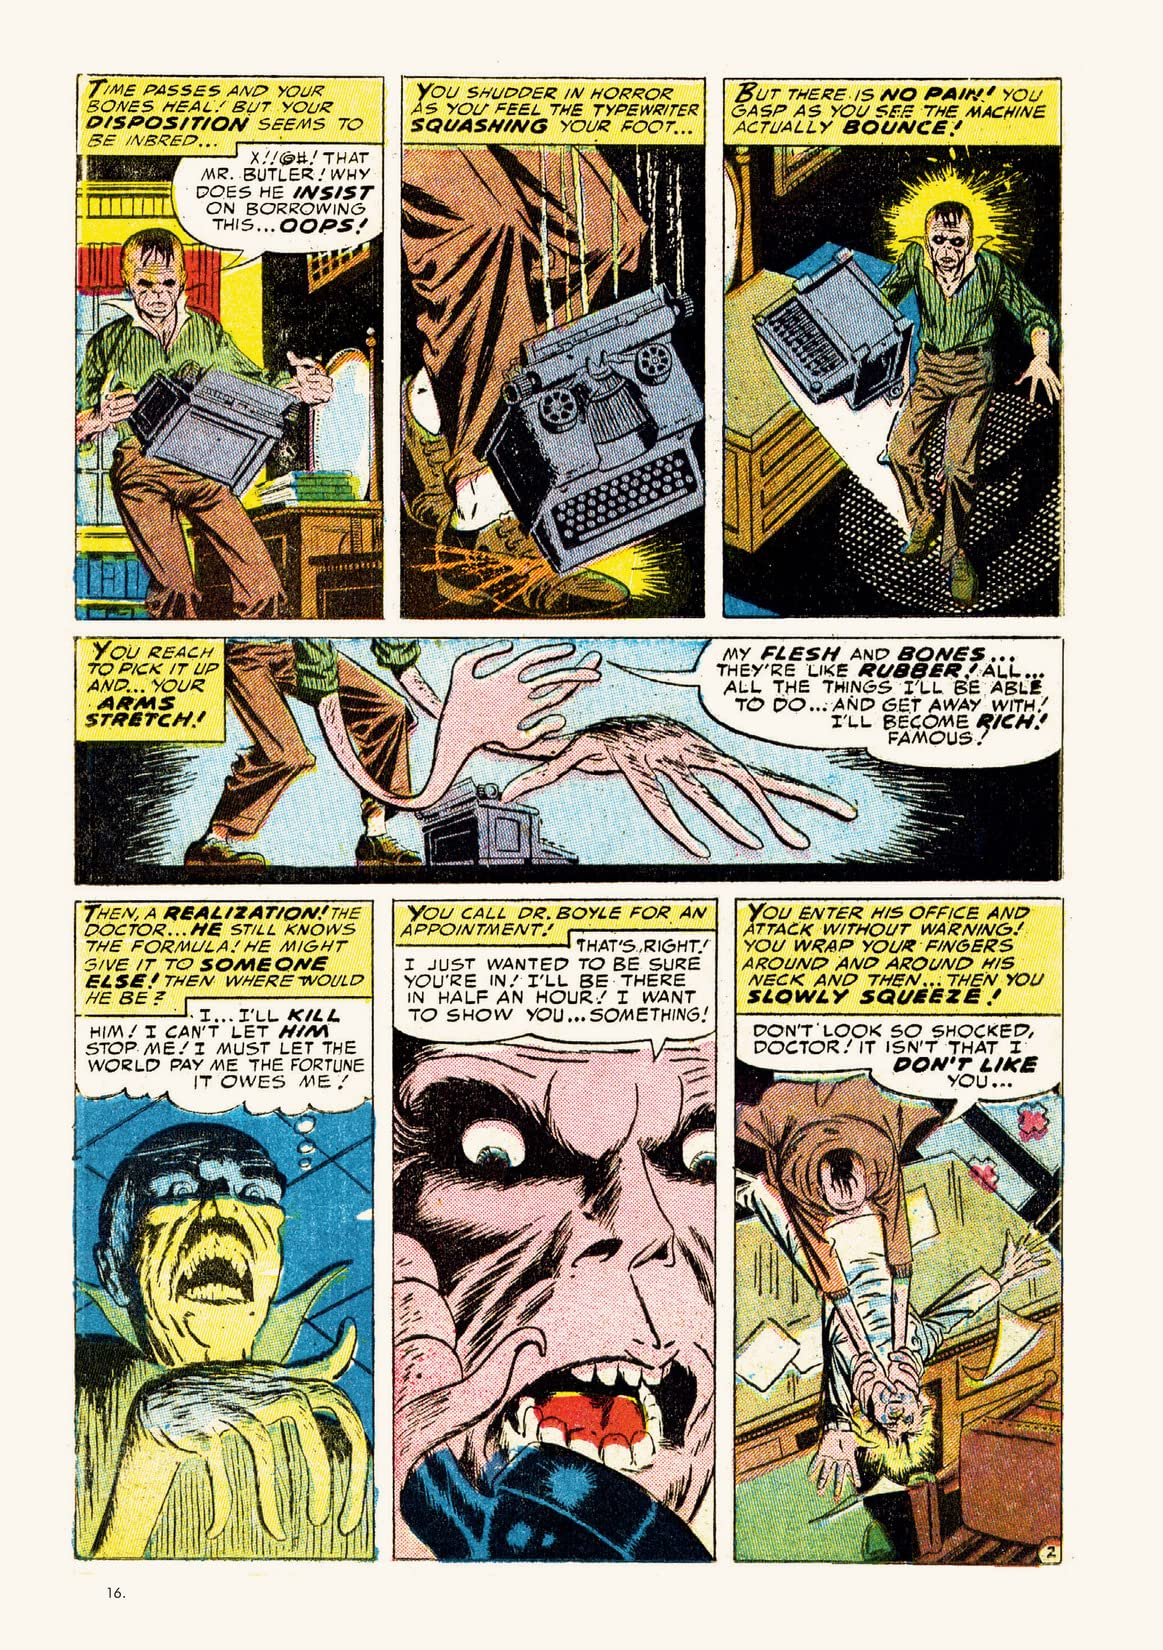 Steve Ditko Archives Vol. 1: Strange Suspense